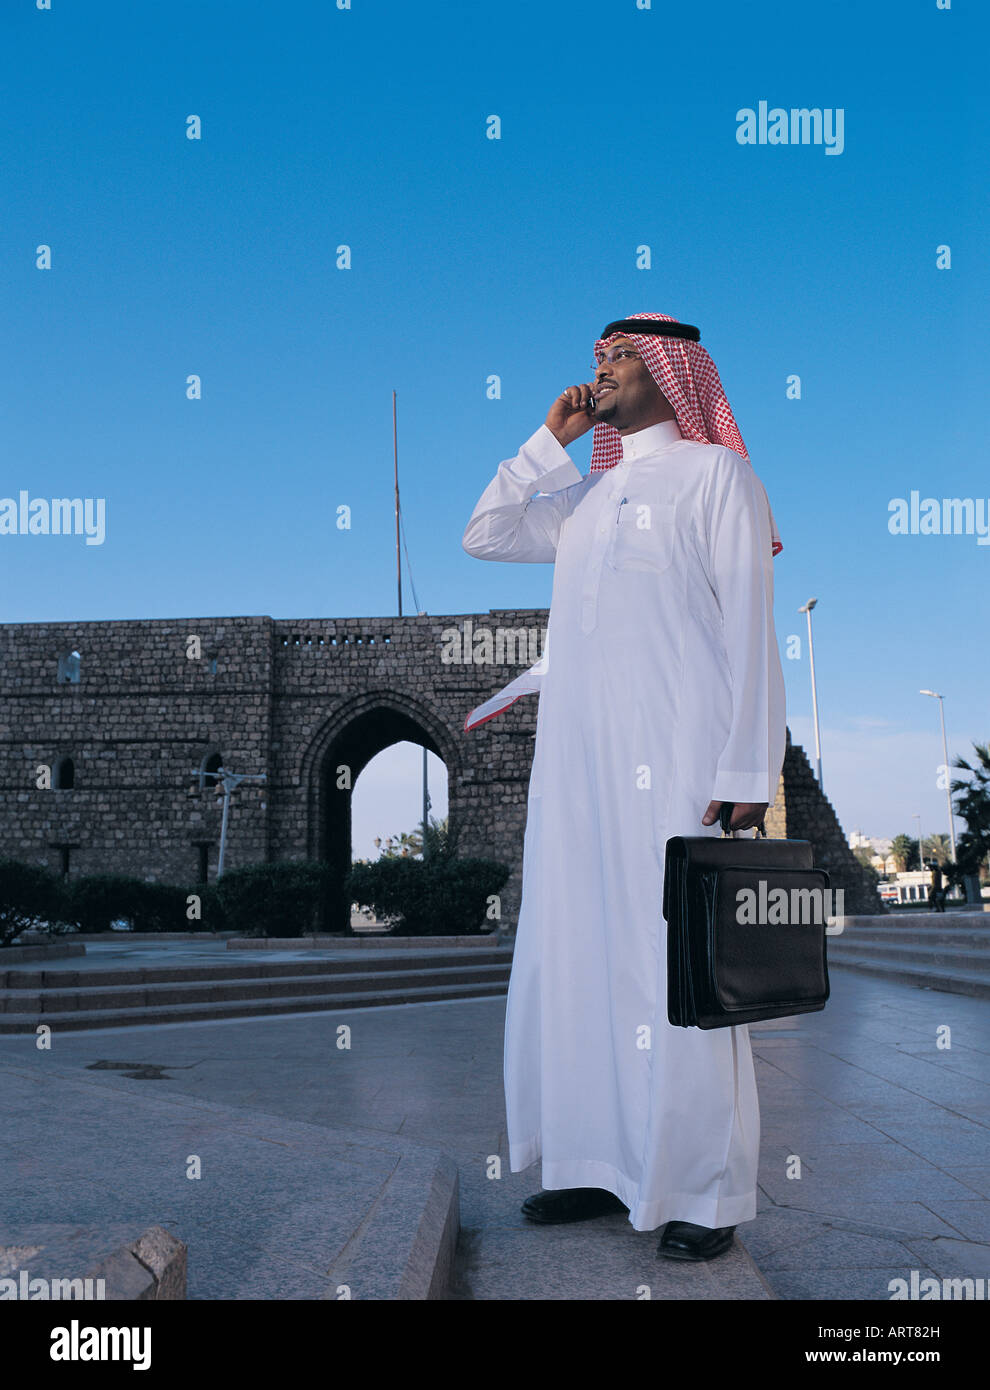 Saudi man using mobile phone near ancient gate of Old Town